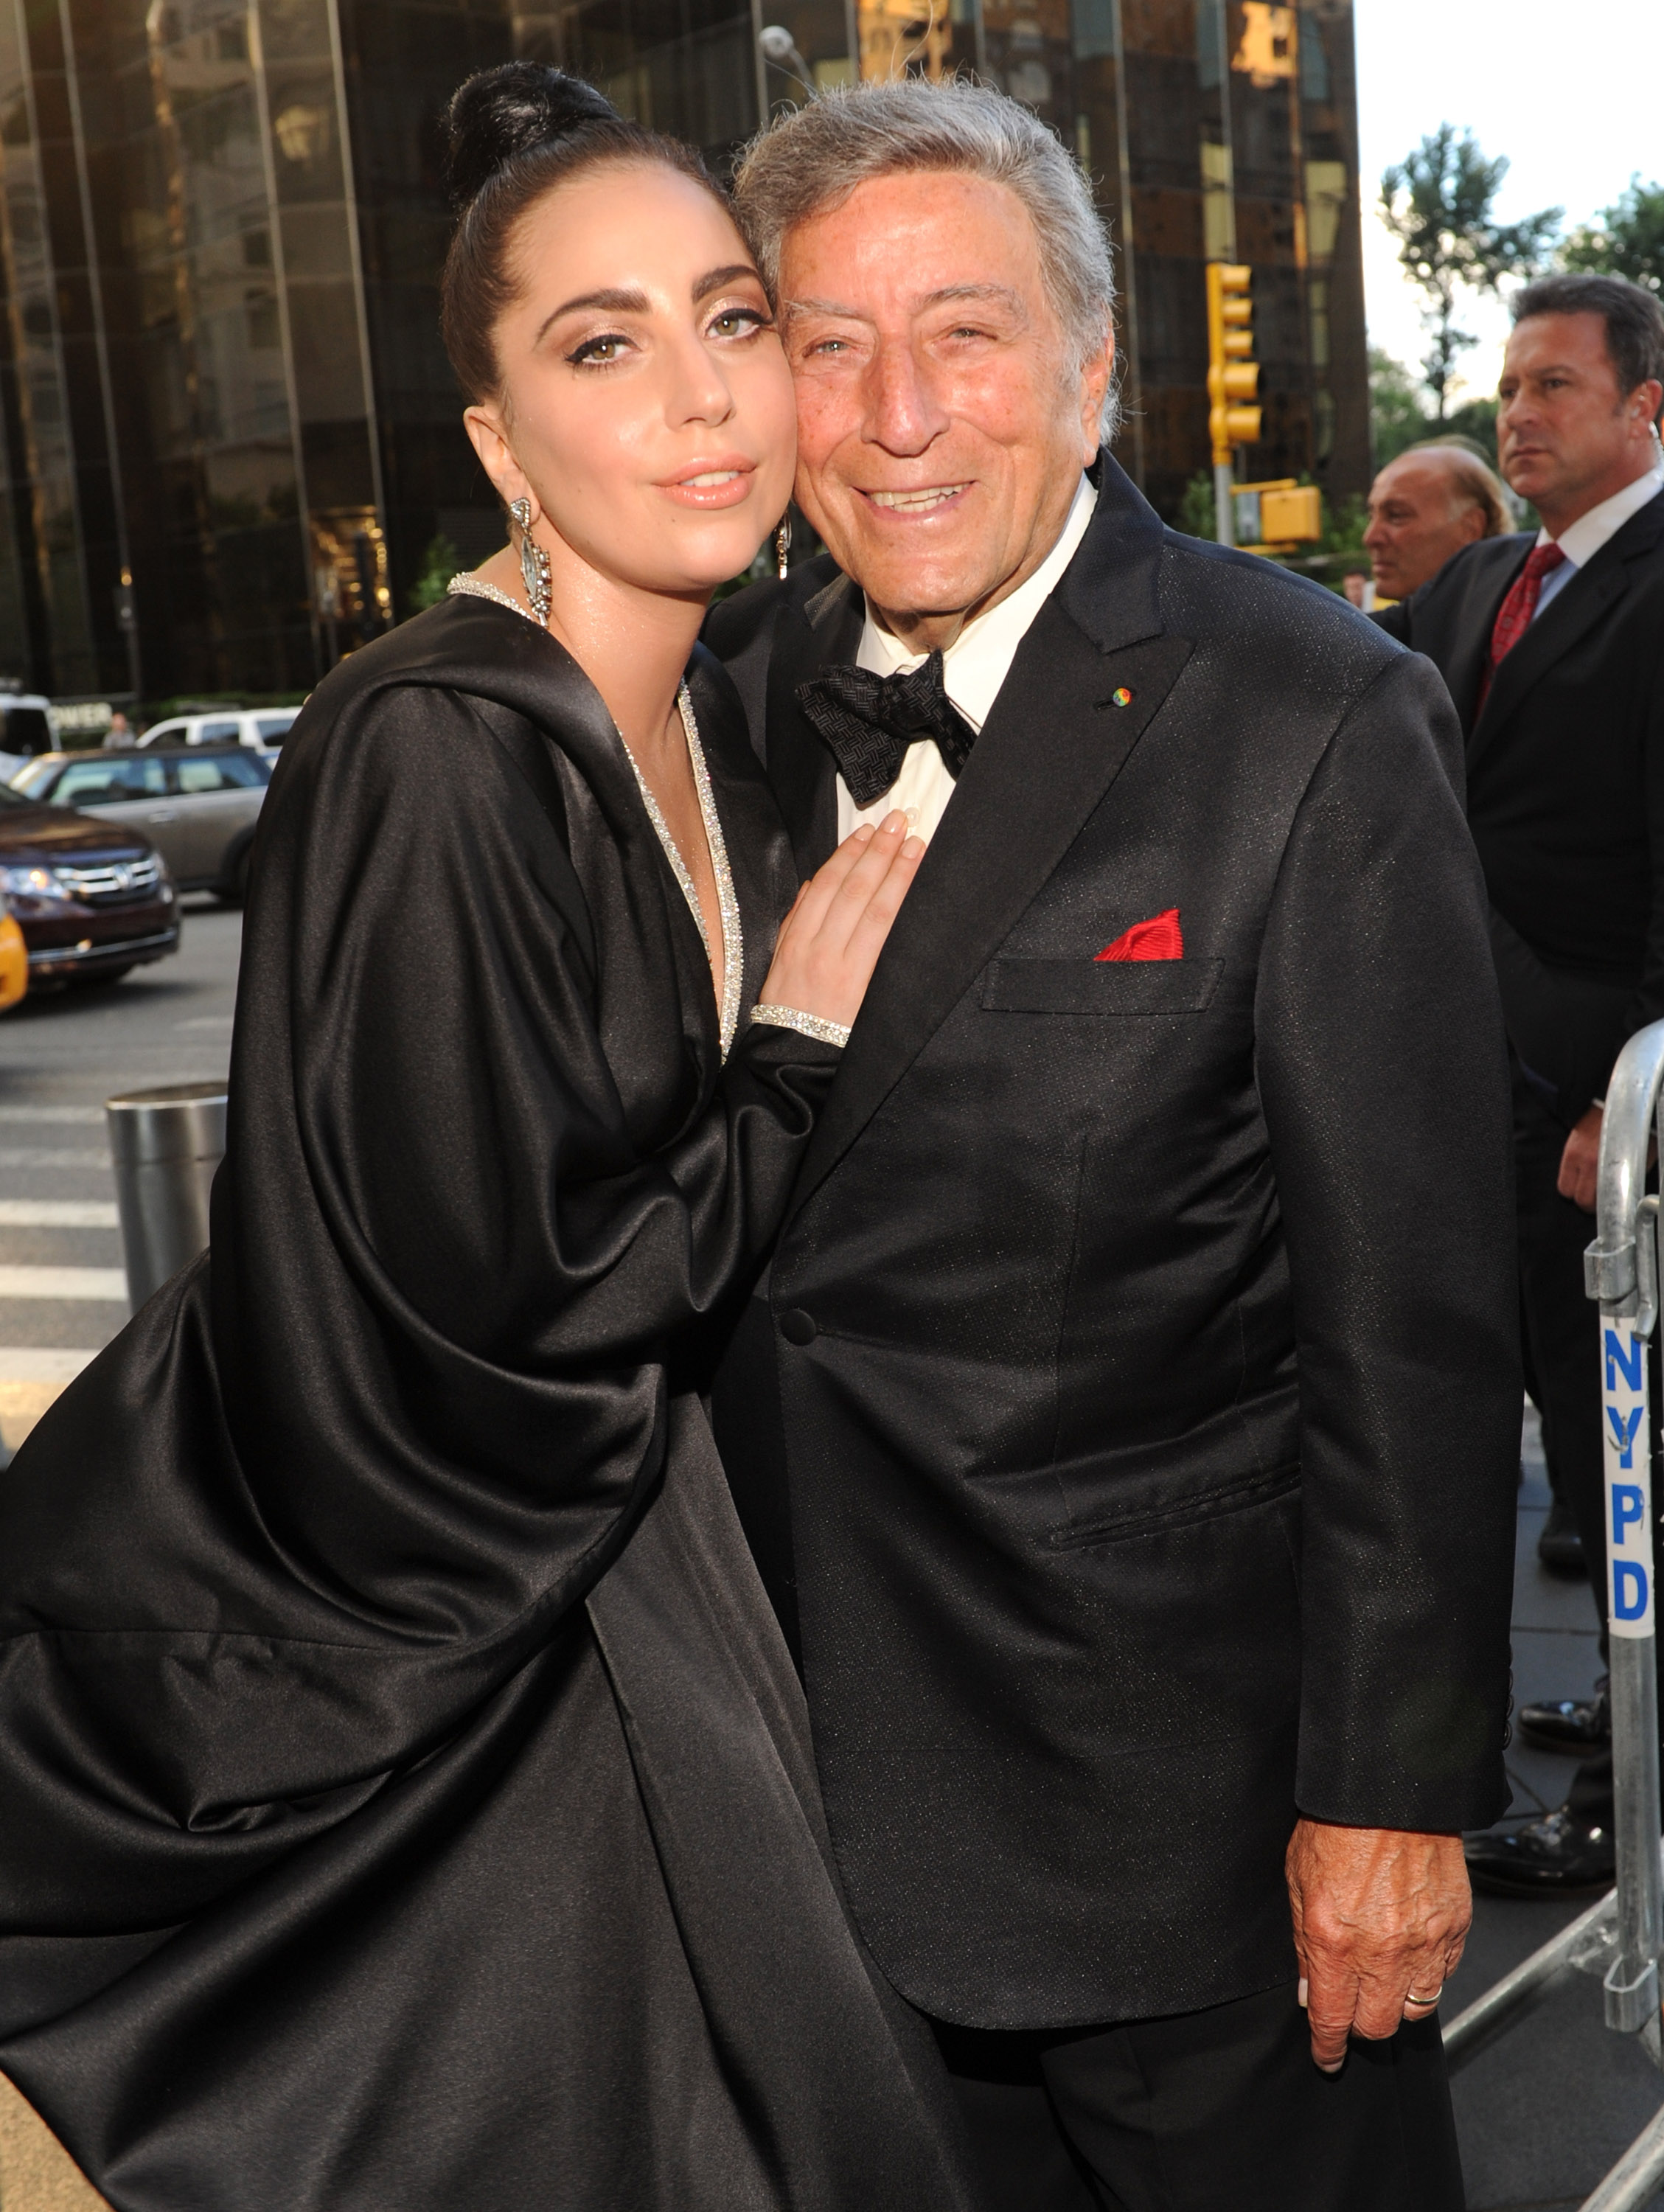 Tony Bennett and Lady Gaga arrive to their  Cheek To Cheek  taping at Jazz at Lincoln Center on July 28, 2014 in New York City.